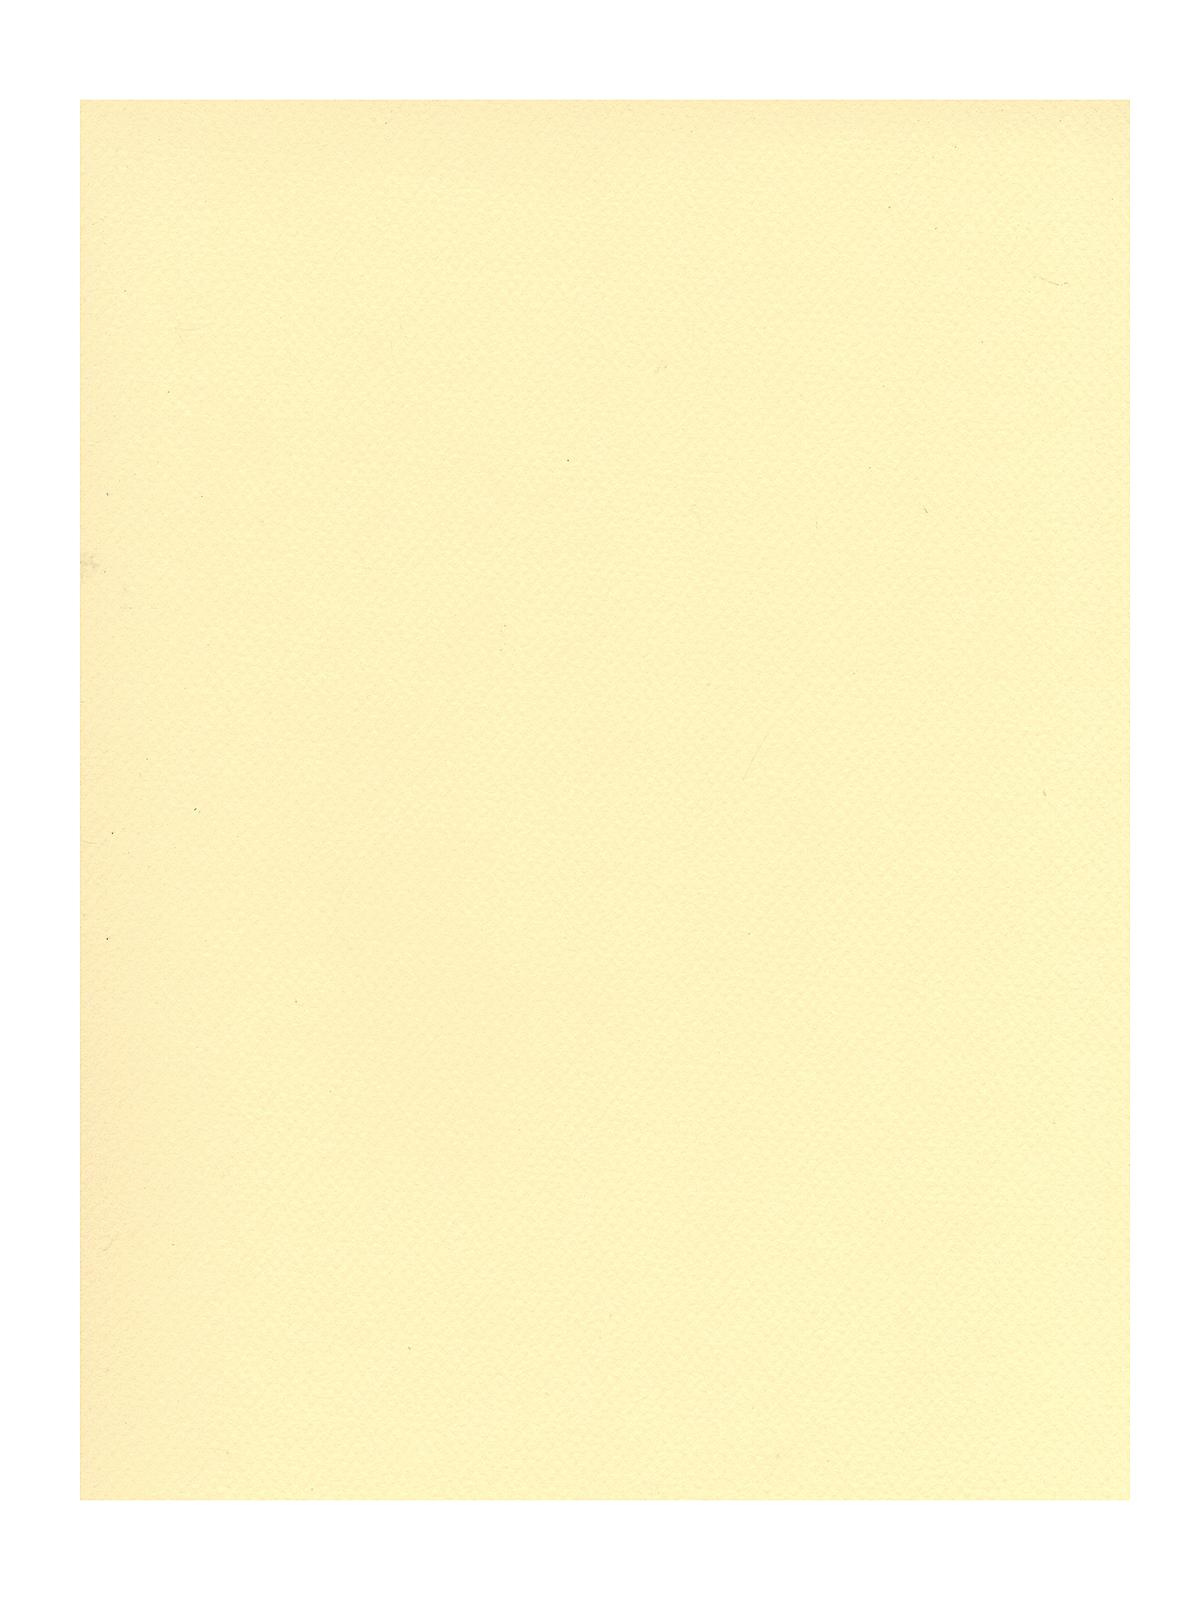 Mi-teintes Tinted Paper Pale Yellow 19 In. X 25 In.